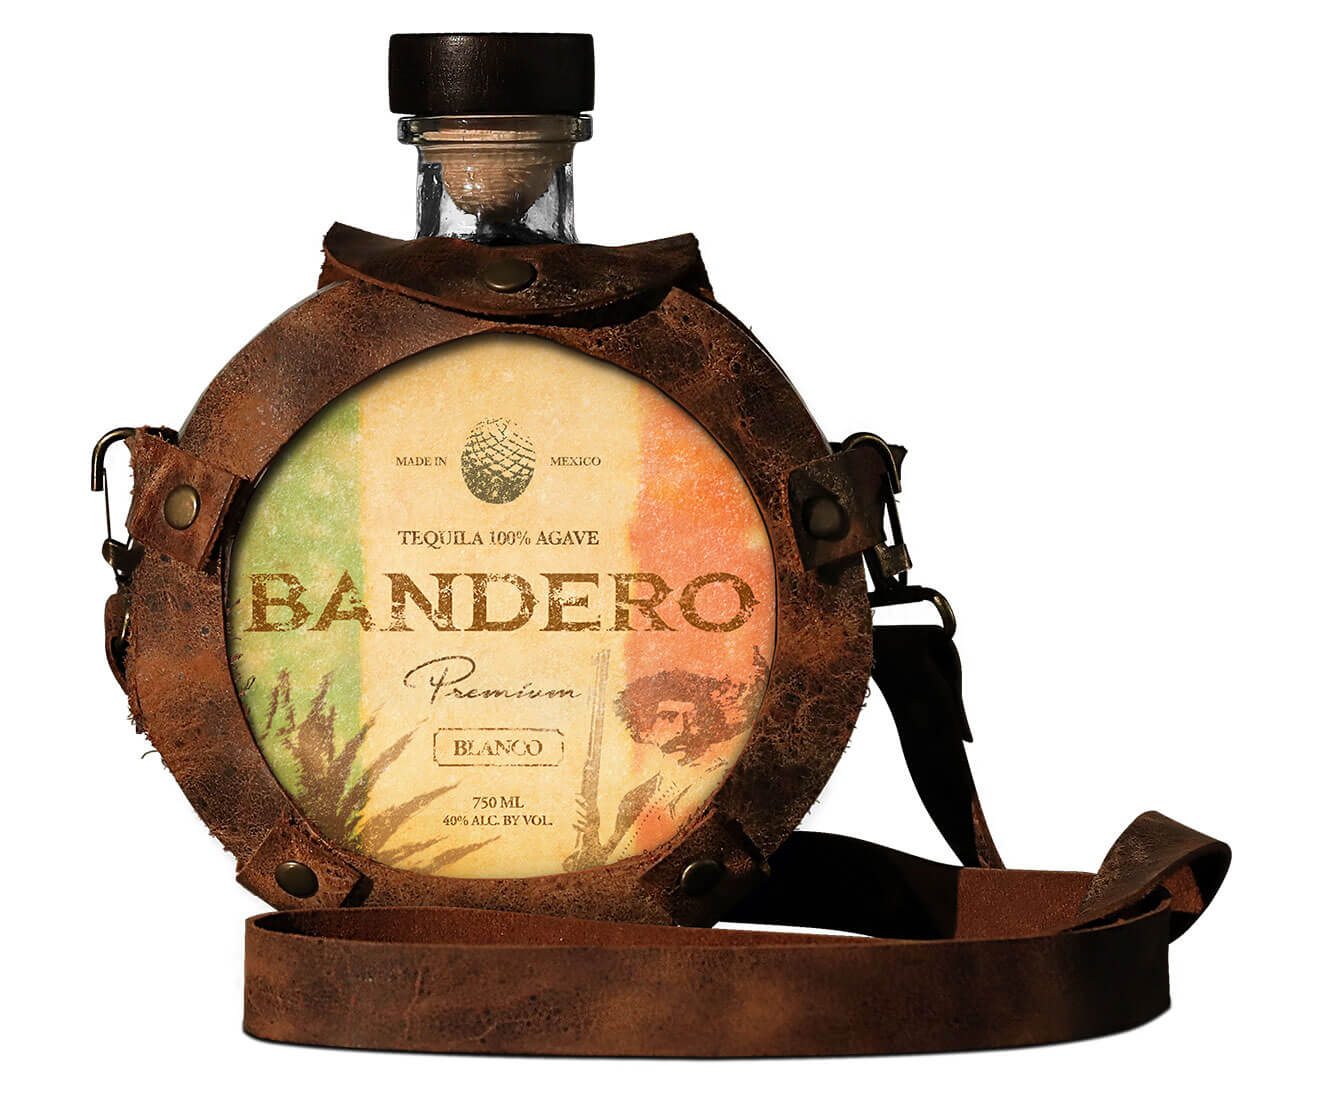 Bandero, bottle cask on white